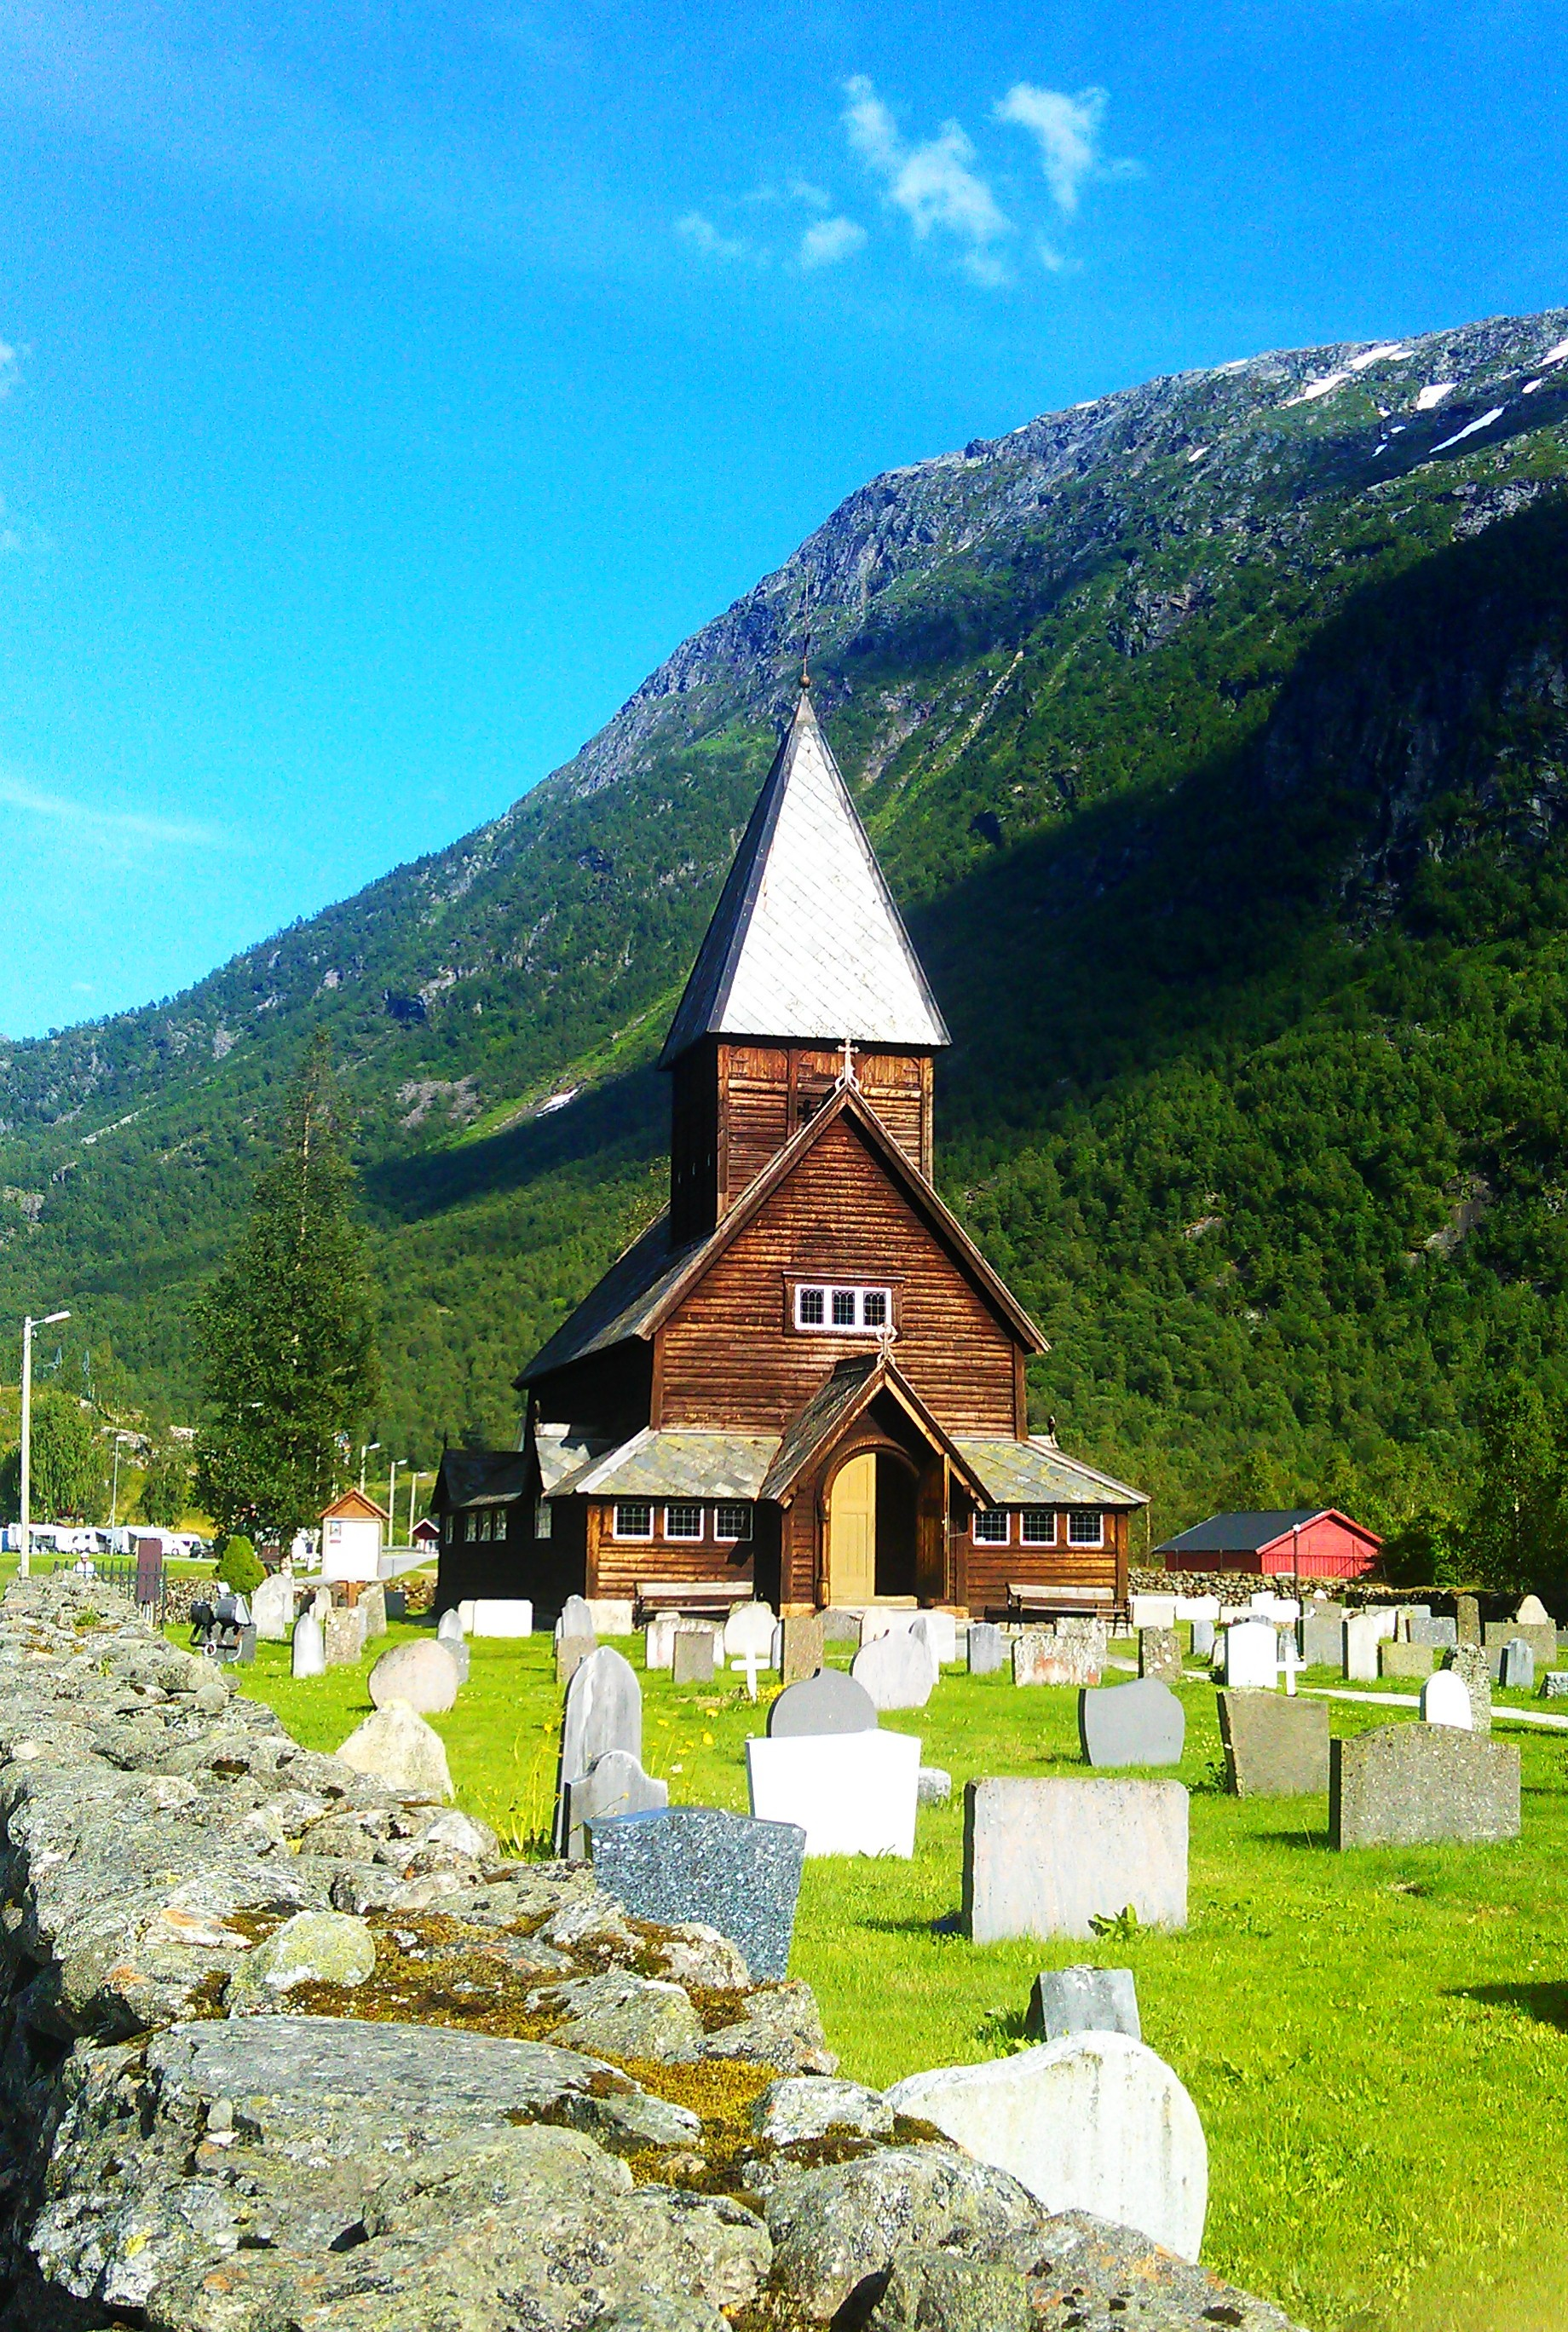 Visiting Norway - Part 1 | The Cheerful Wanderer